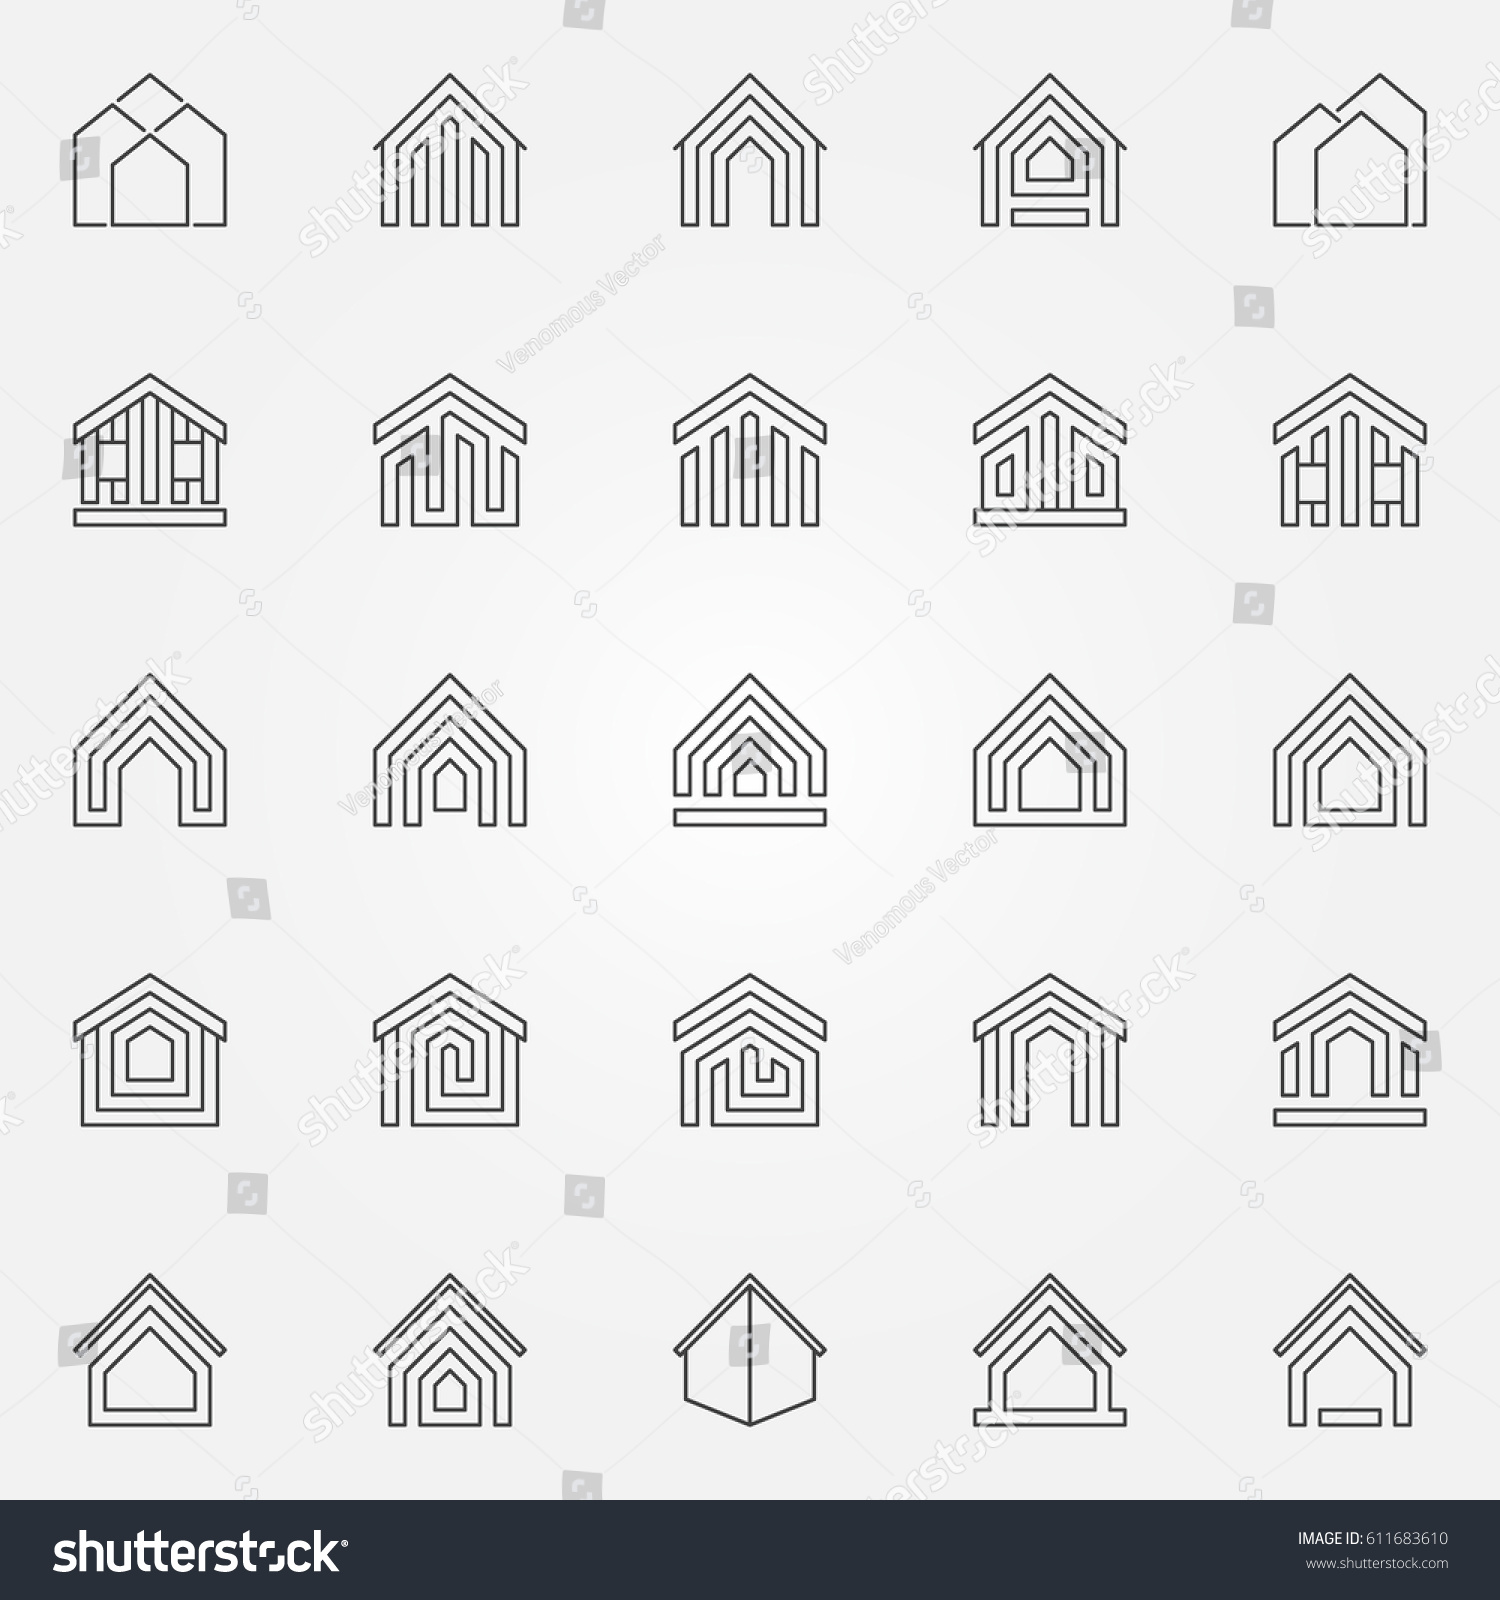 House icons set vector real estate stock vector 611683610 house icons set vector real estate concept symbols or logo elements in thin line style biocorpaavc Image collections